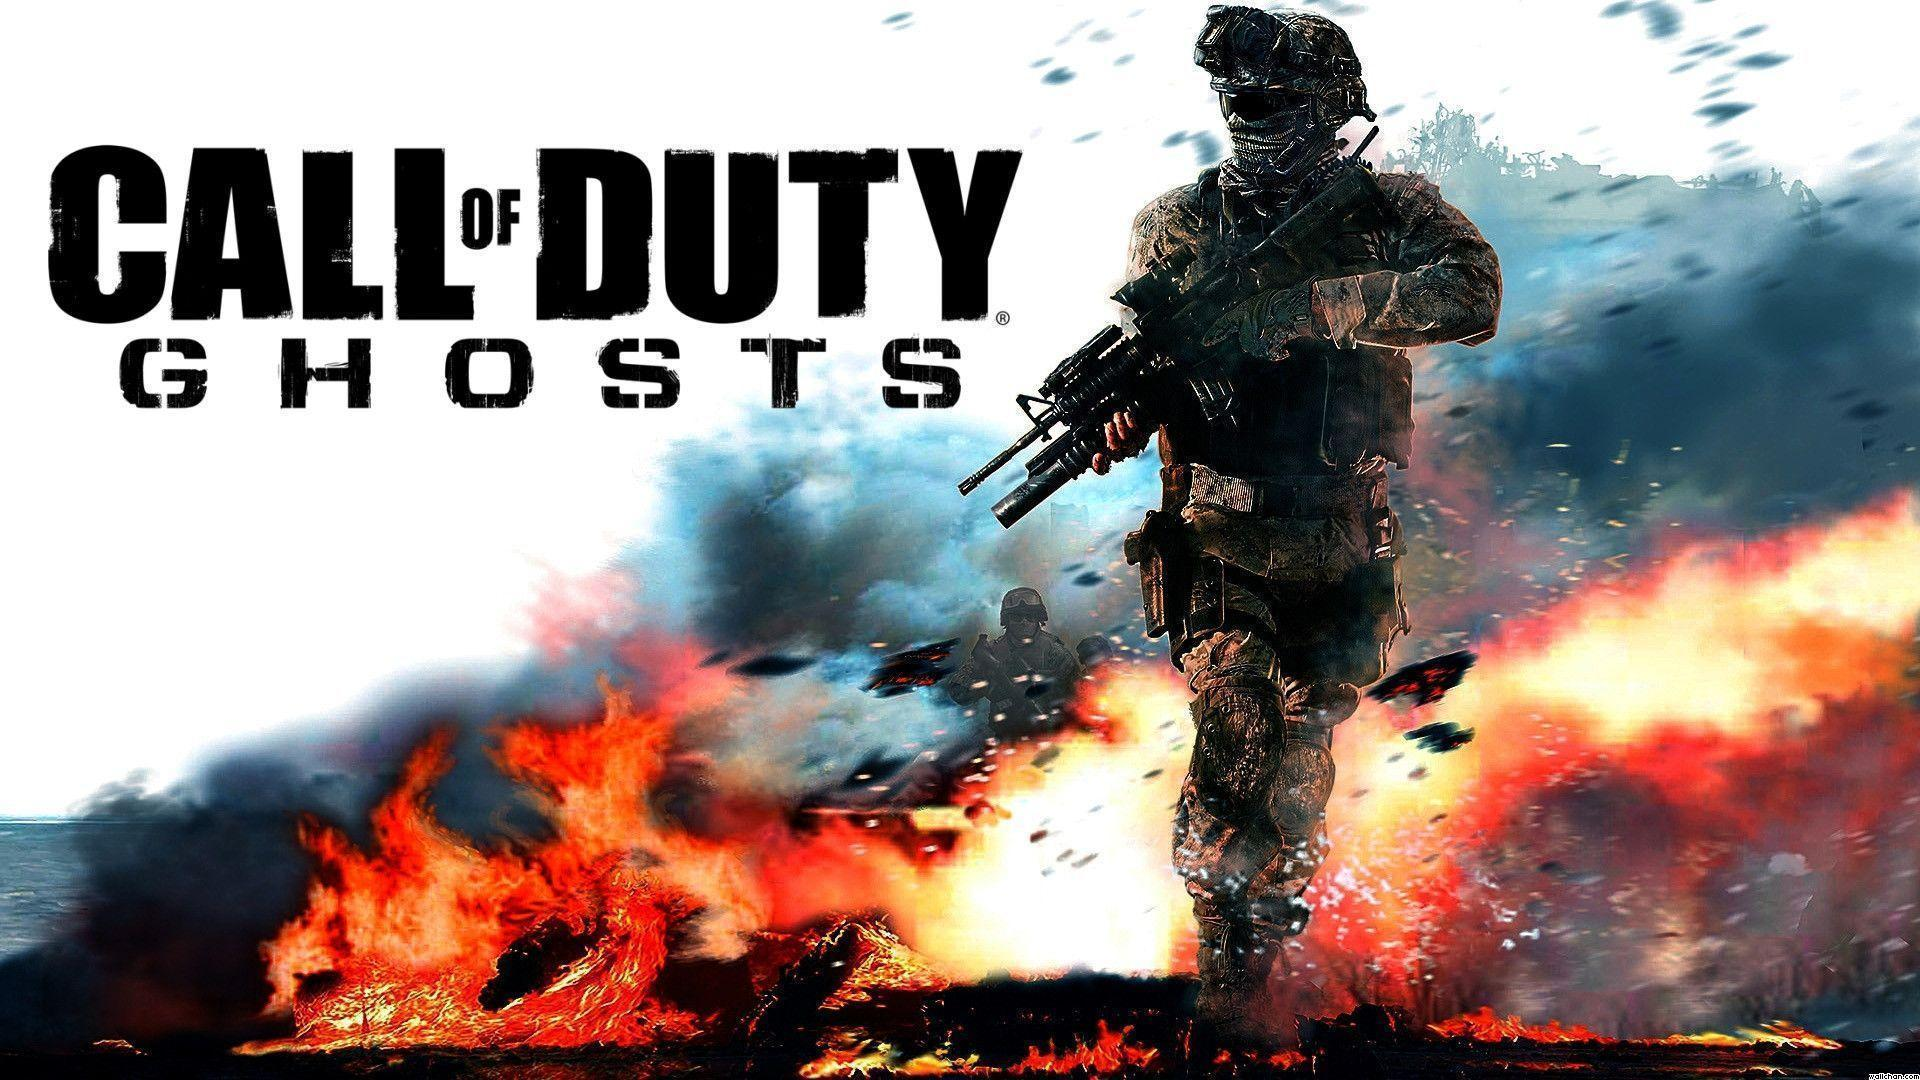 Call of Duty Ghosts wallpapers 21